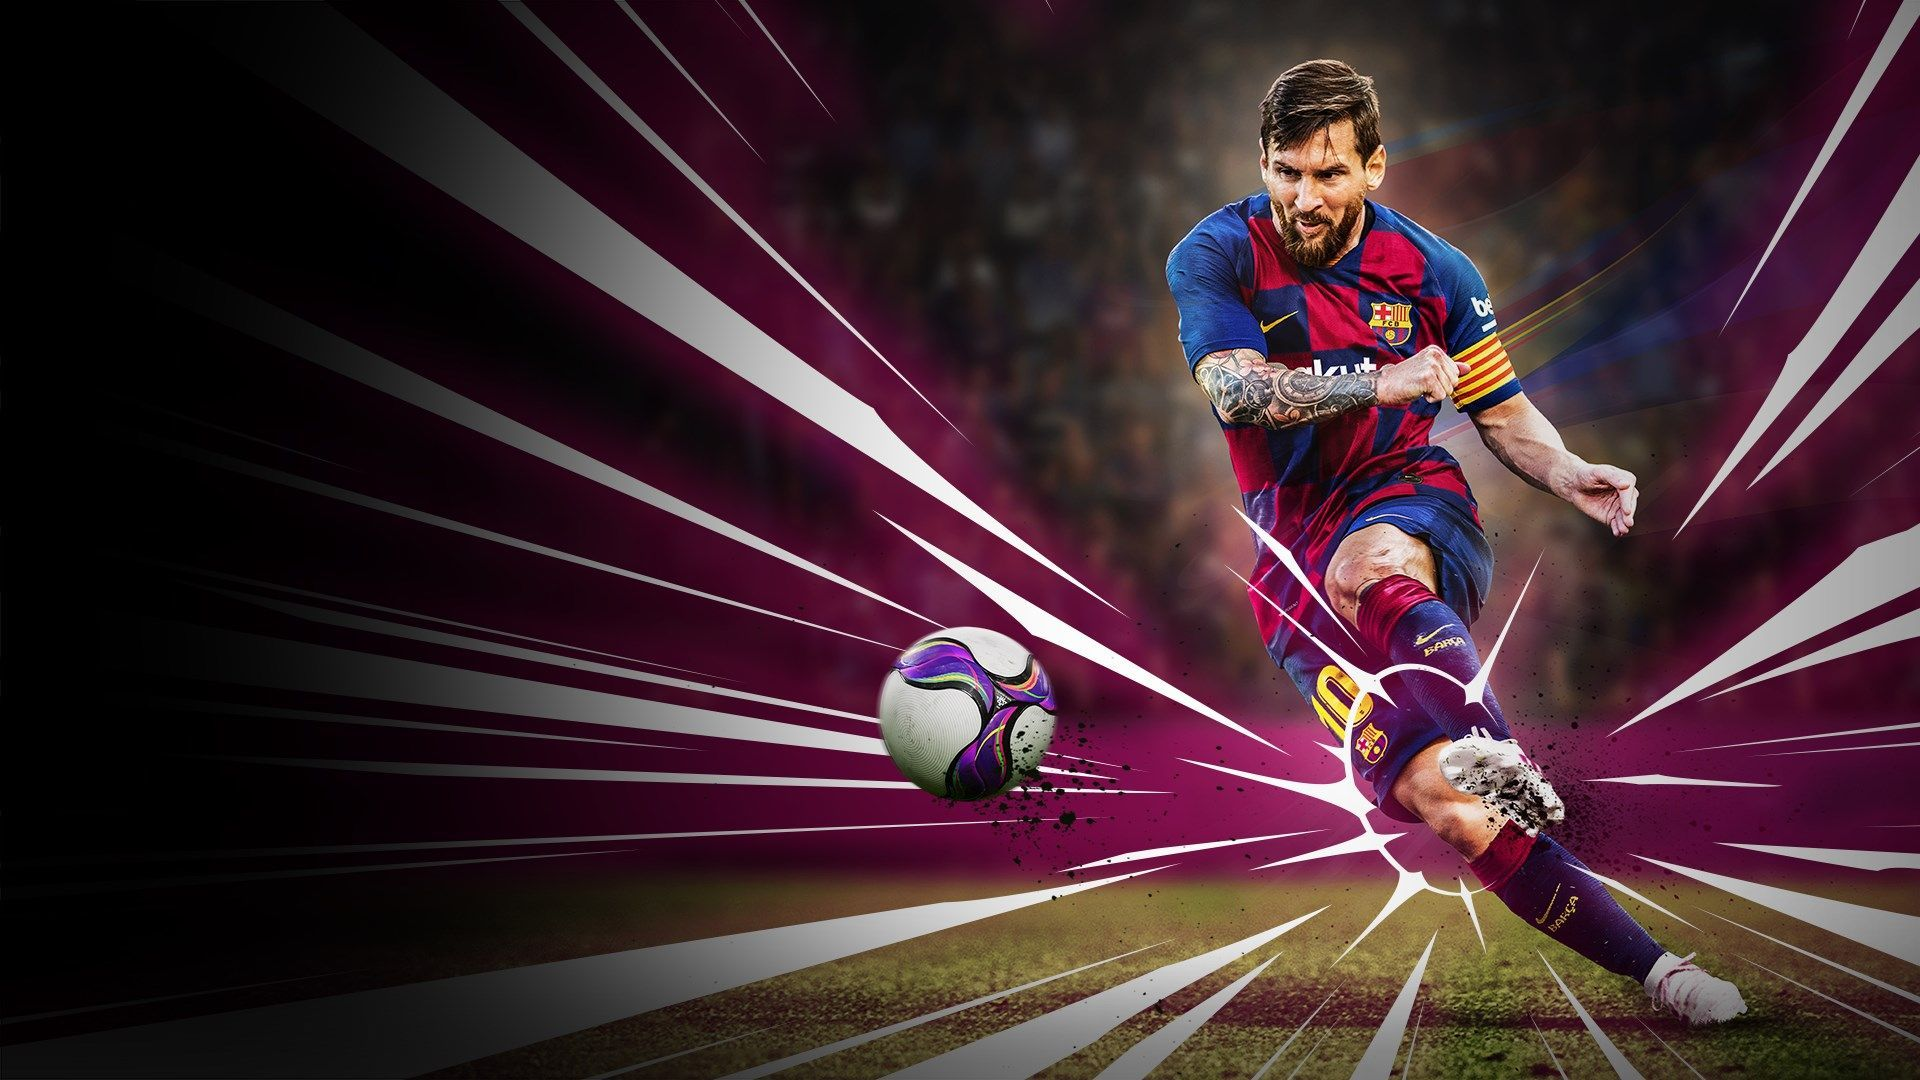 Novagames Org Pes 2020 Mobile Gp And Coins Https Sidosayangora Xyz Novagames Org Pes 2020 Mobile Gp And Coins Hi Guys Fifa 20 Fifa Soccer Backgrounds